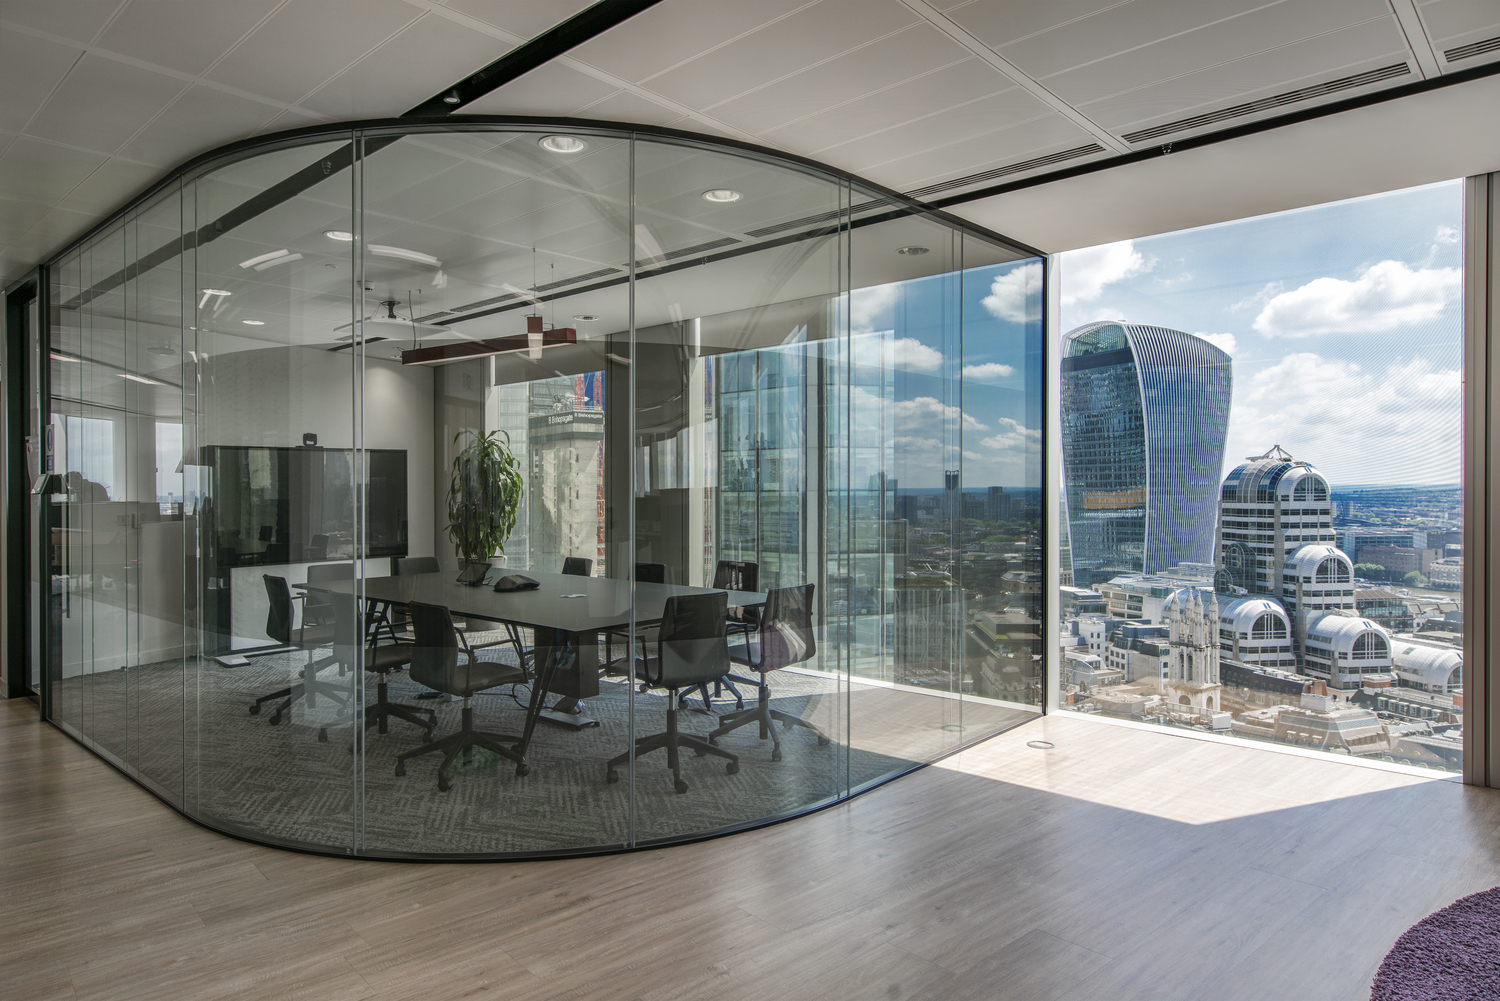 Equifax boardroom designed with privacy